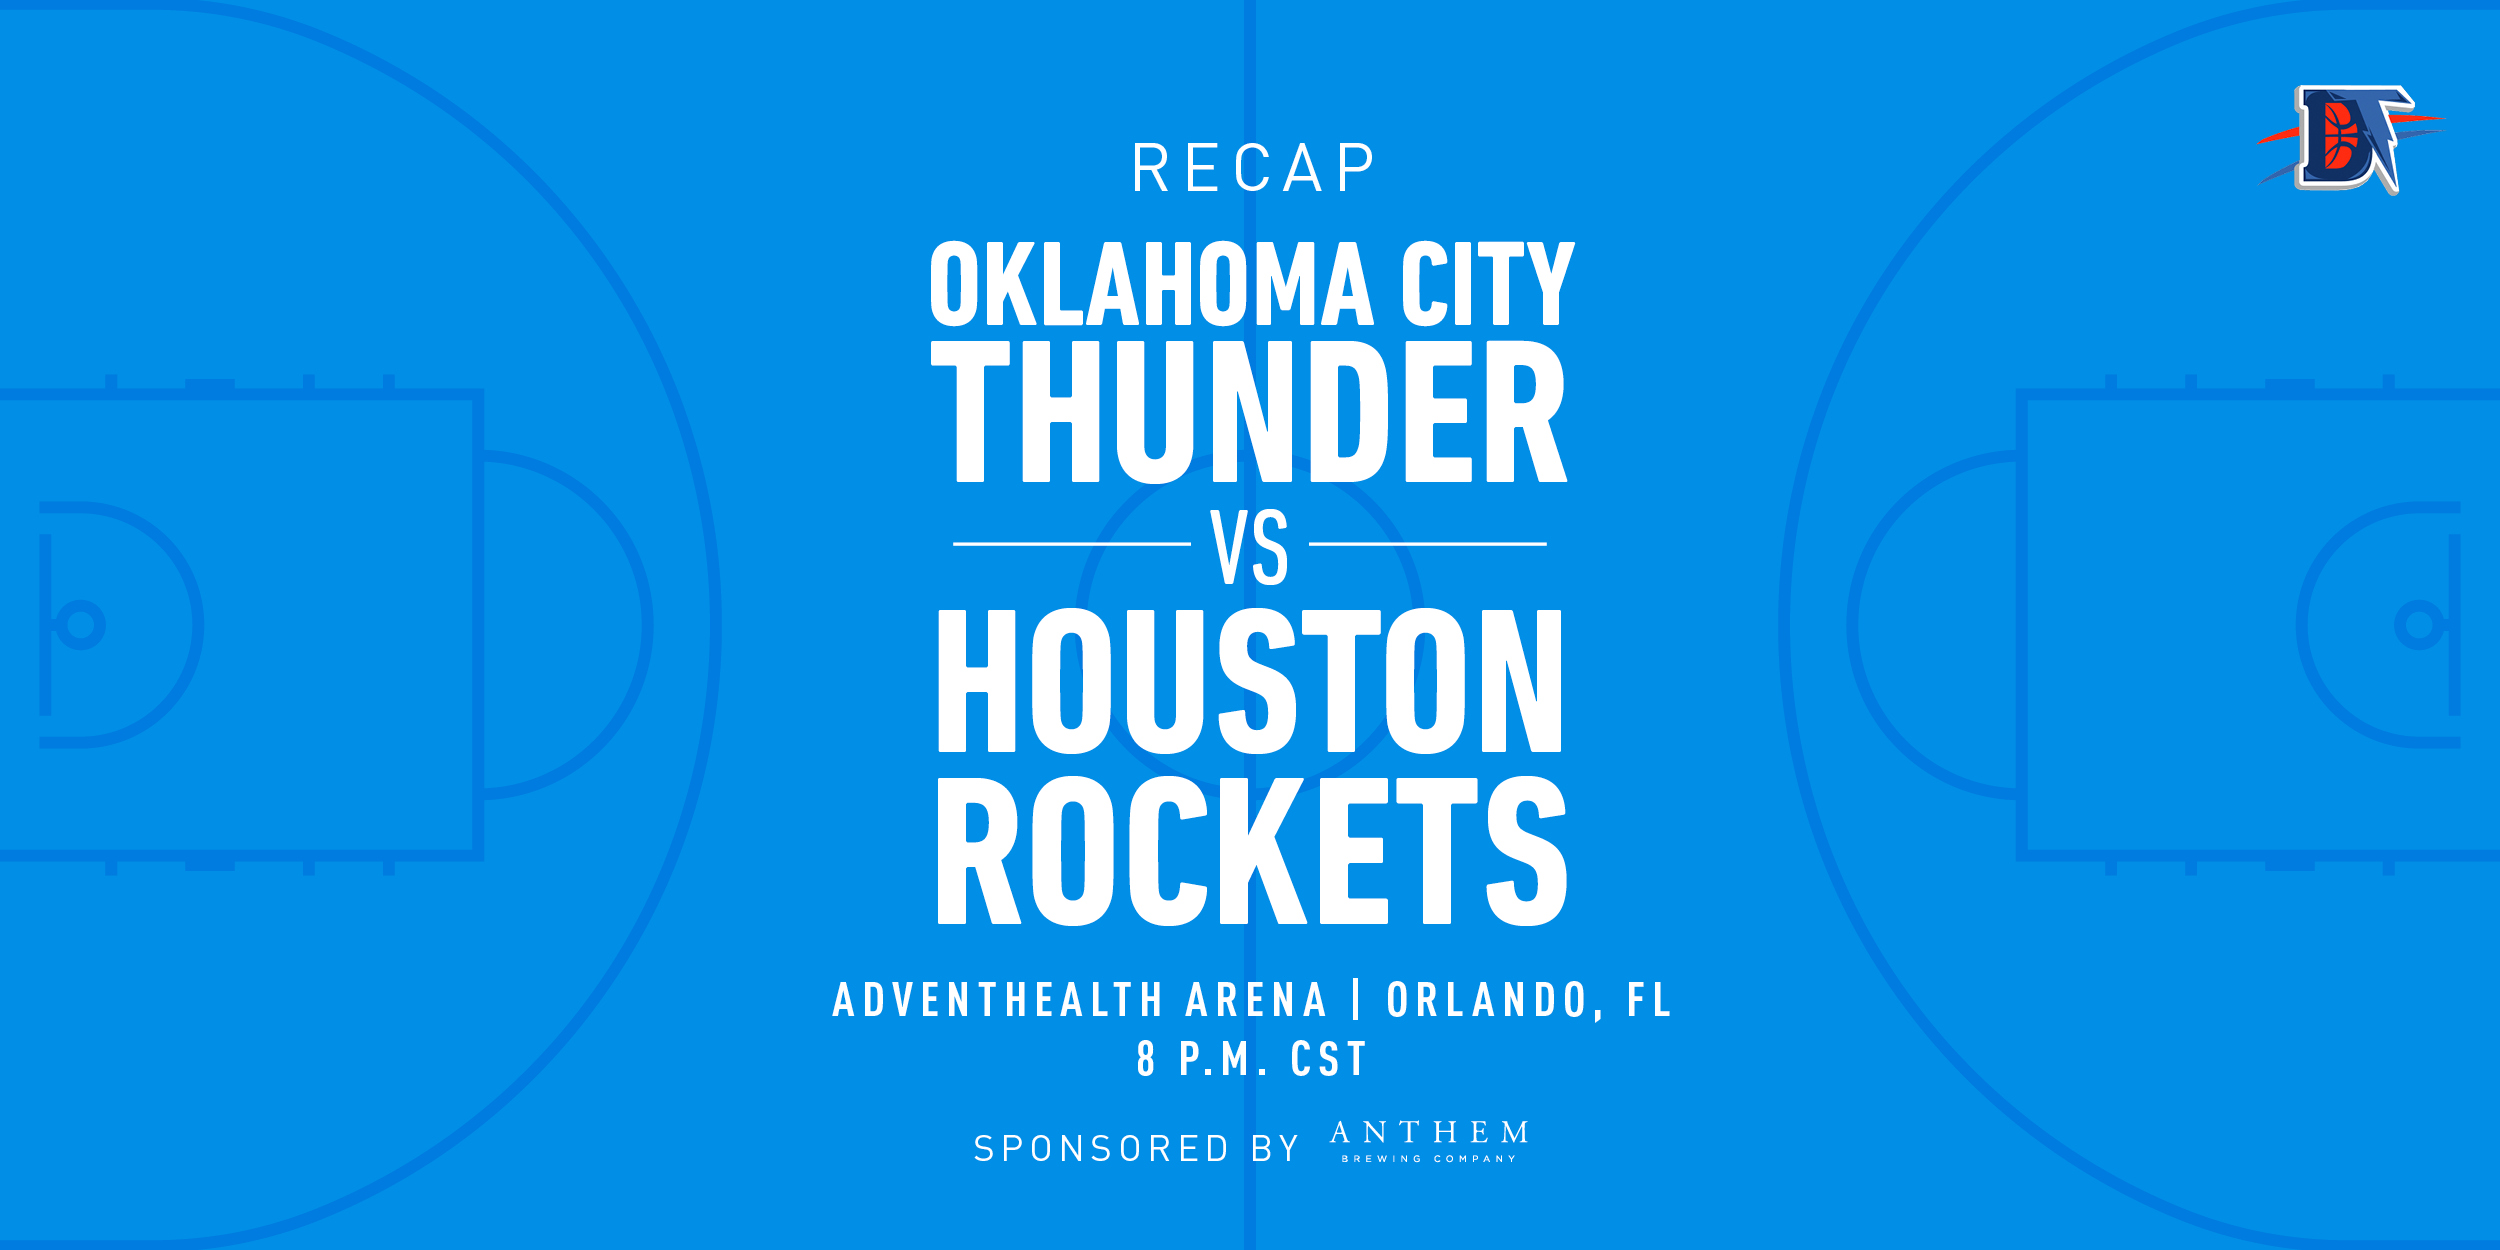 Game 7 Recap: Rockets def. Thunder 104-102